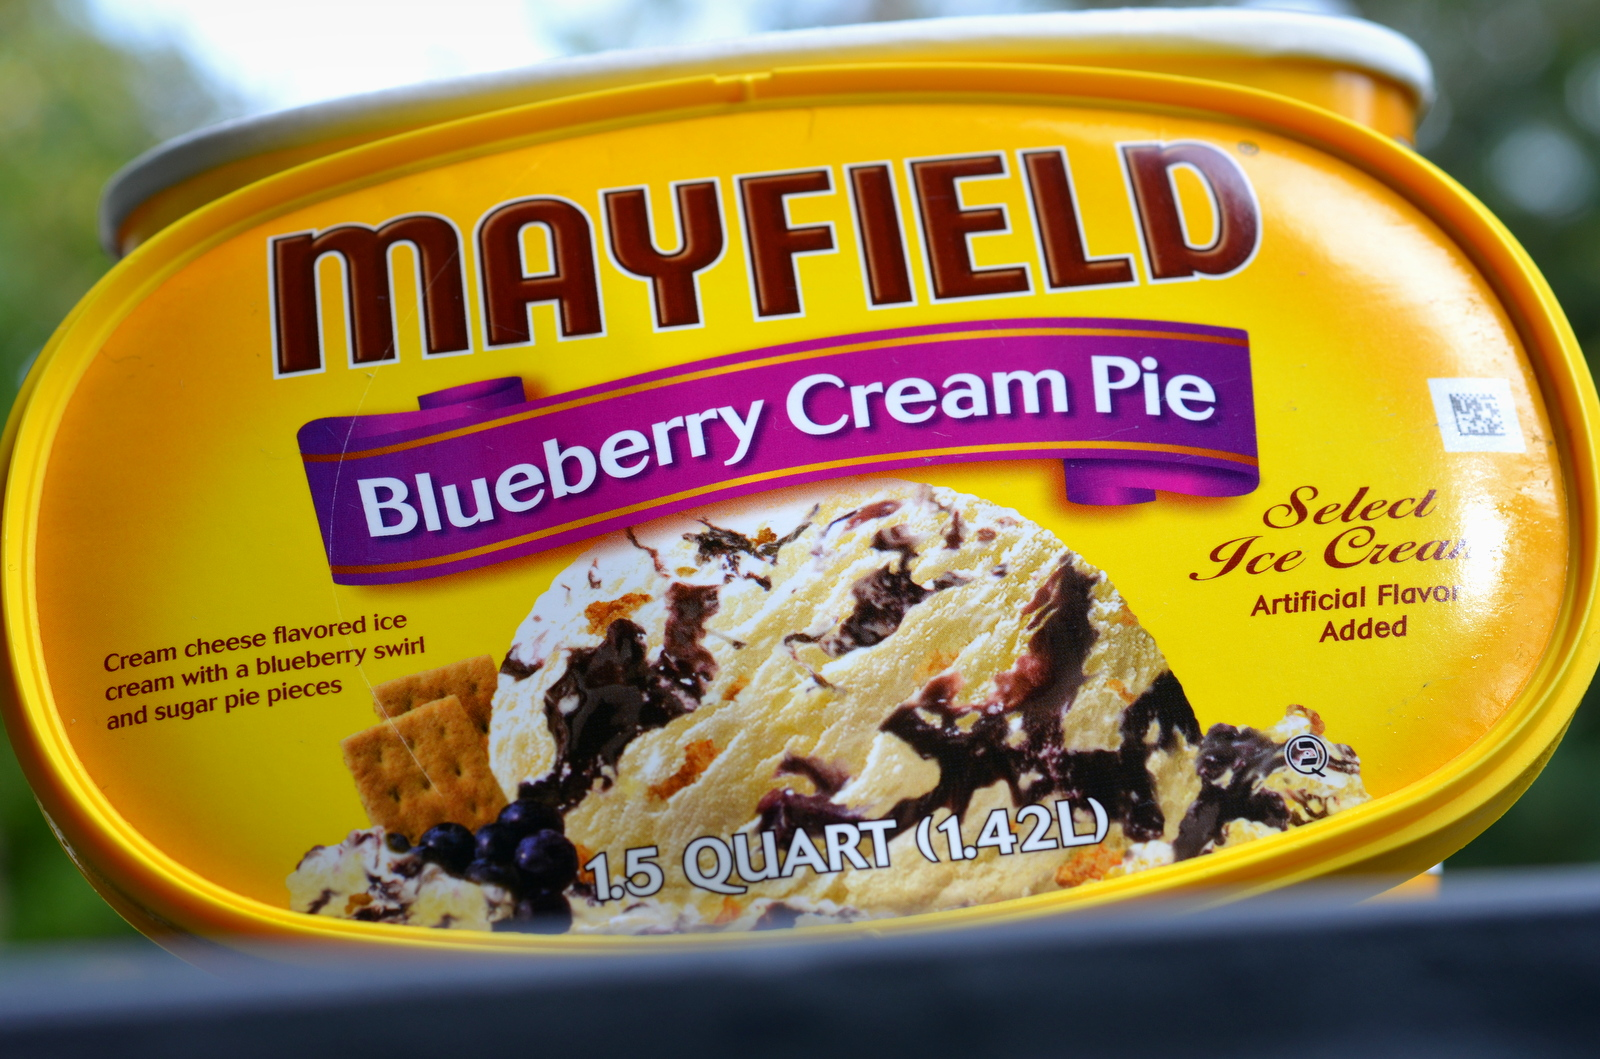 The Ice Cream Informant: REVIEW: Mayfield Blueberry Cream Pie